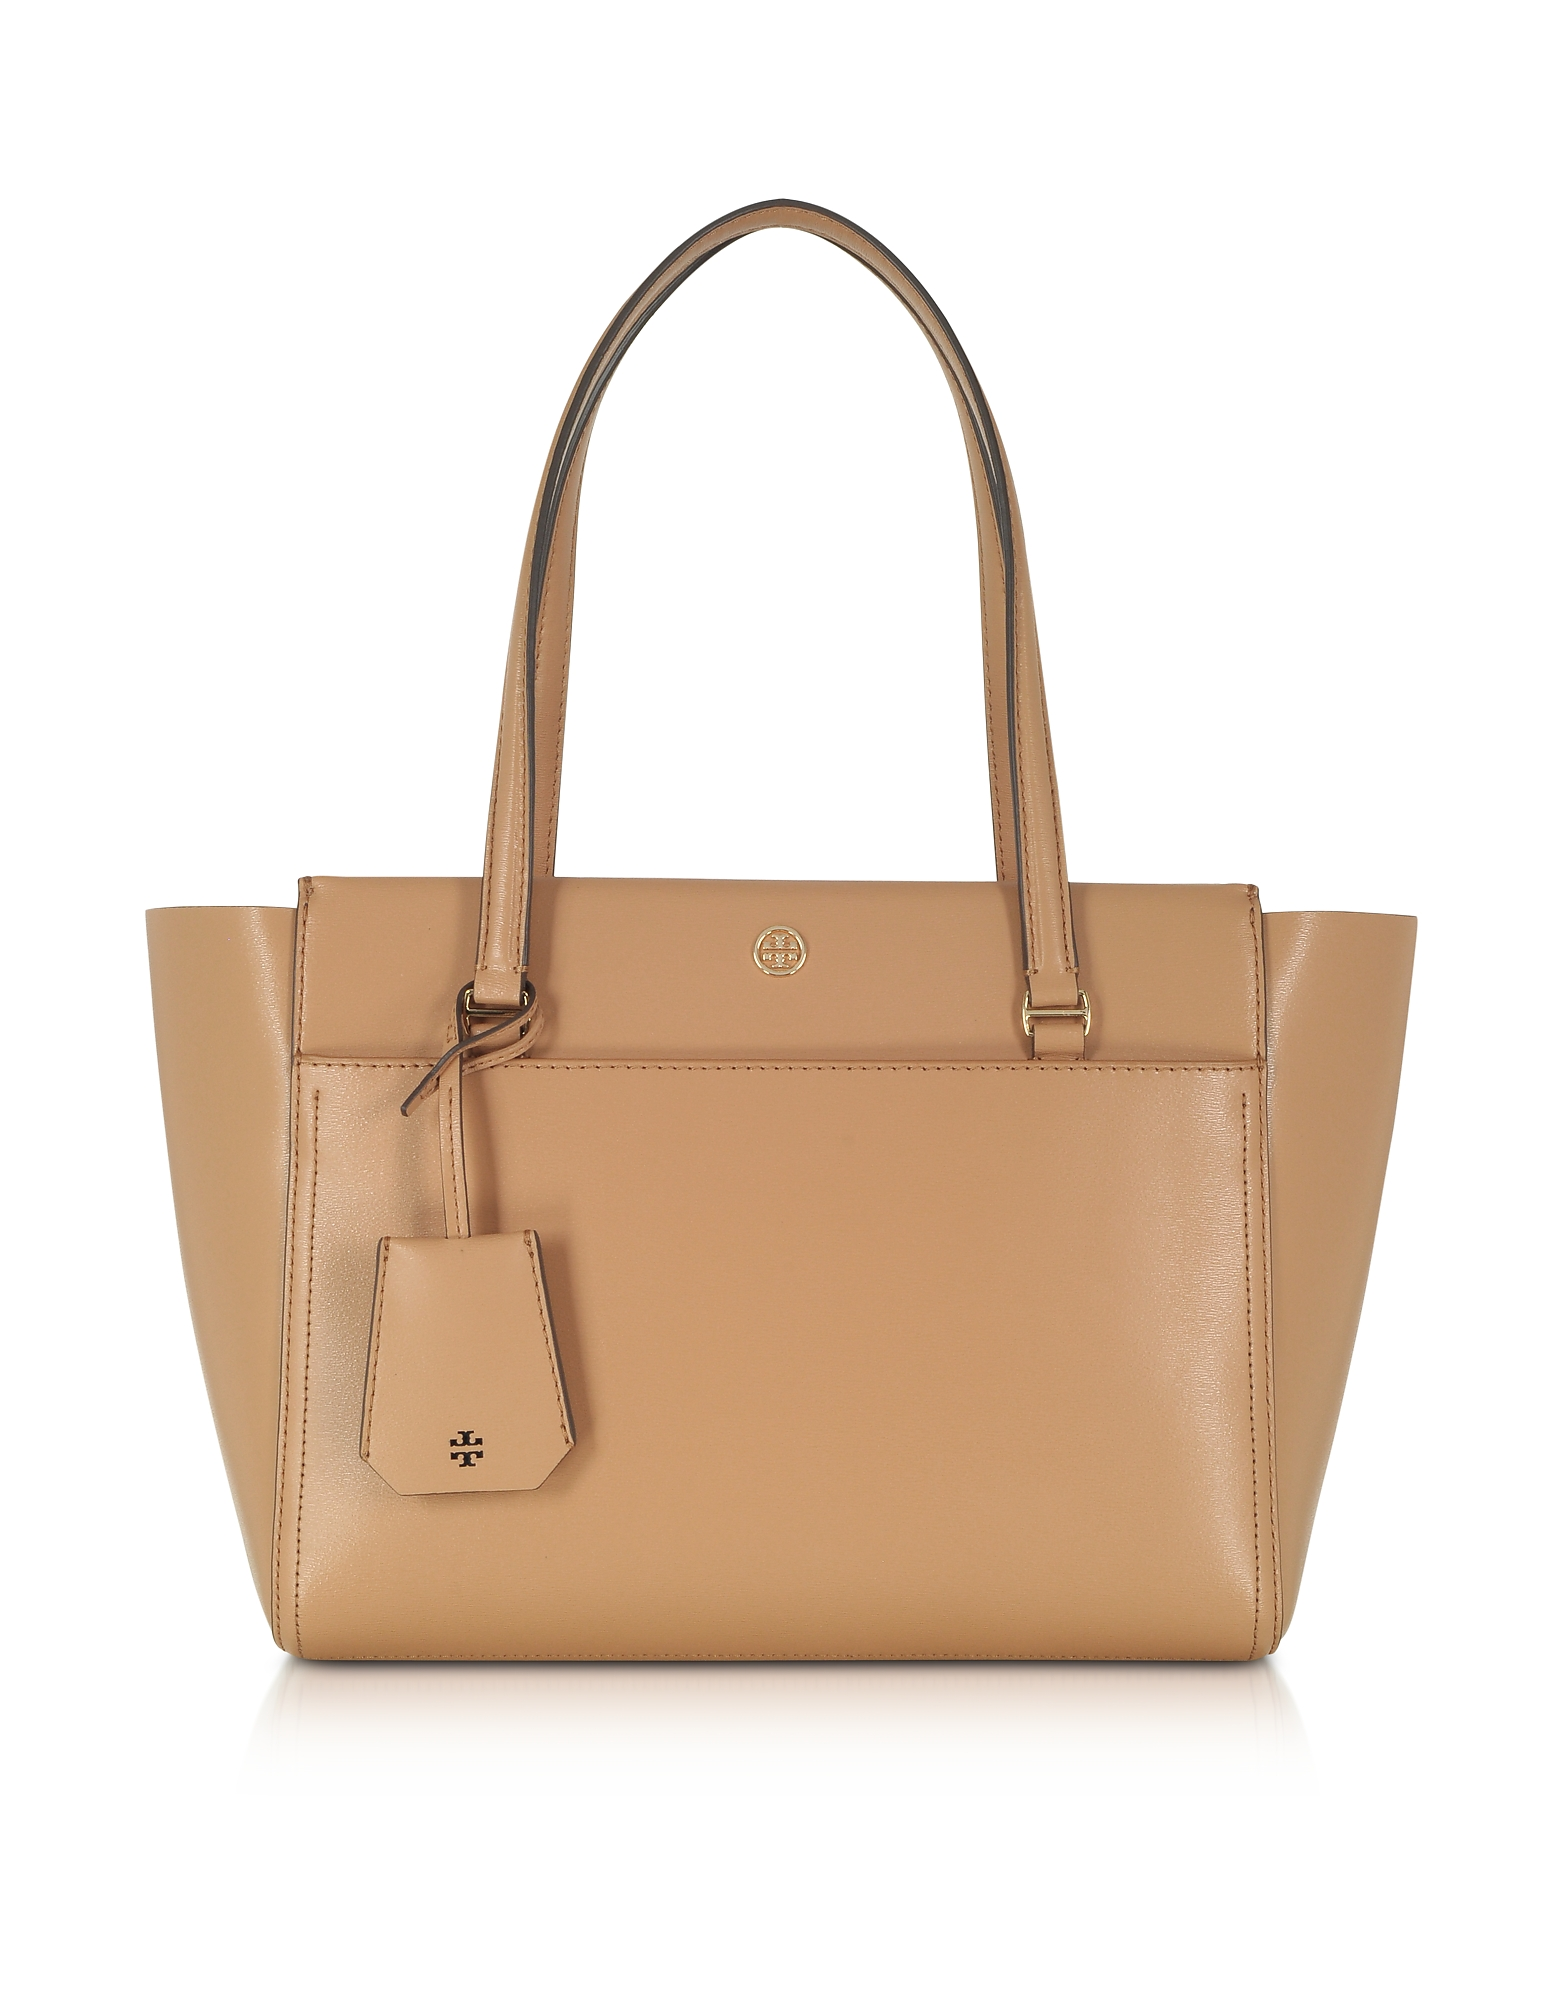 Tory Burch Handbags, Parker Cardamom Leather Small Tote Bag